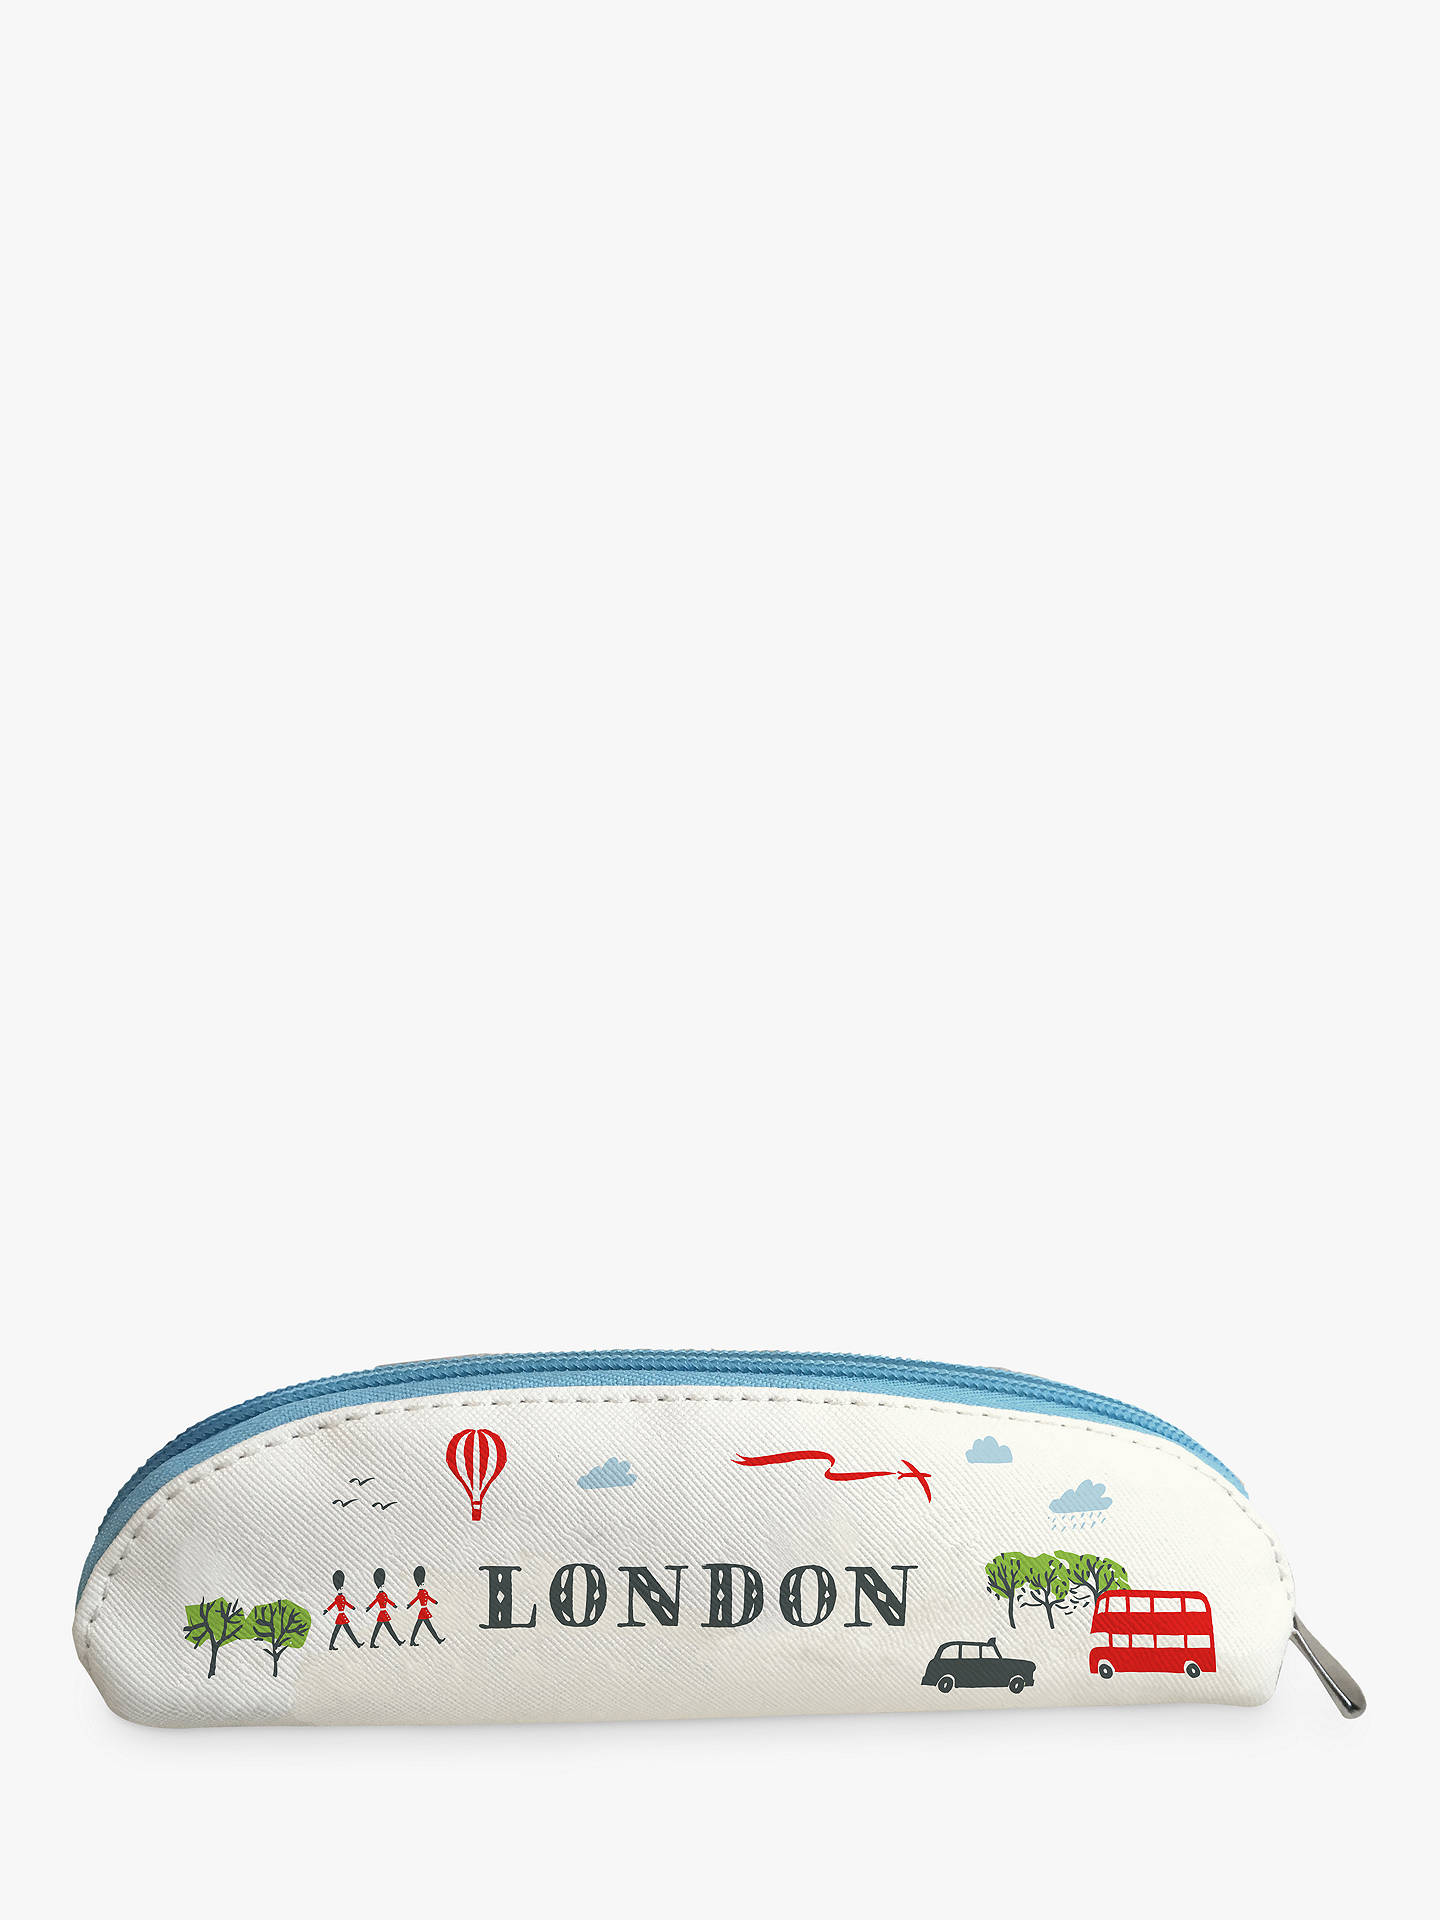 BuyAlice Tait London Pencil Case Online at johnlewis.com